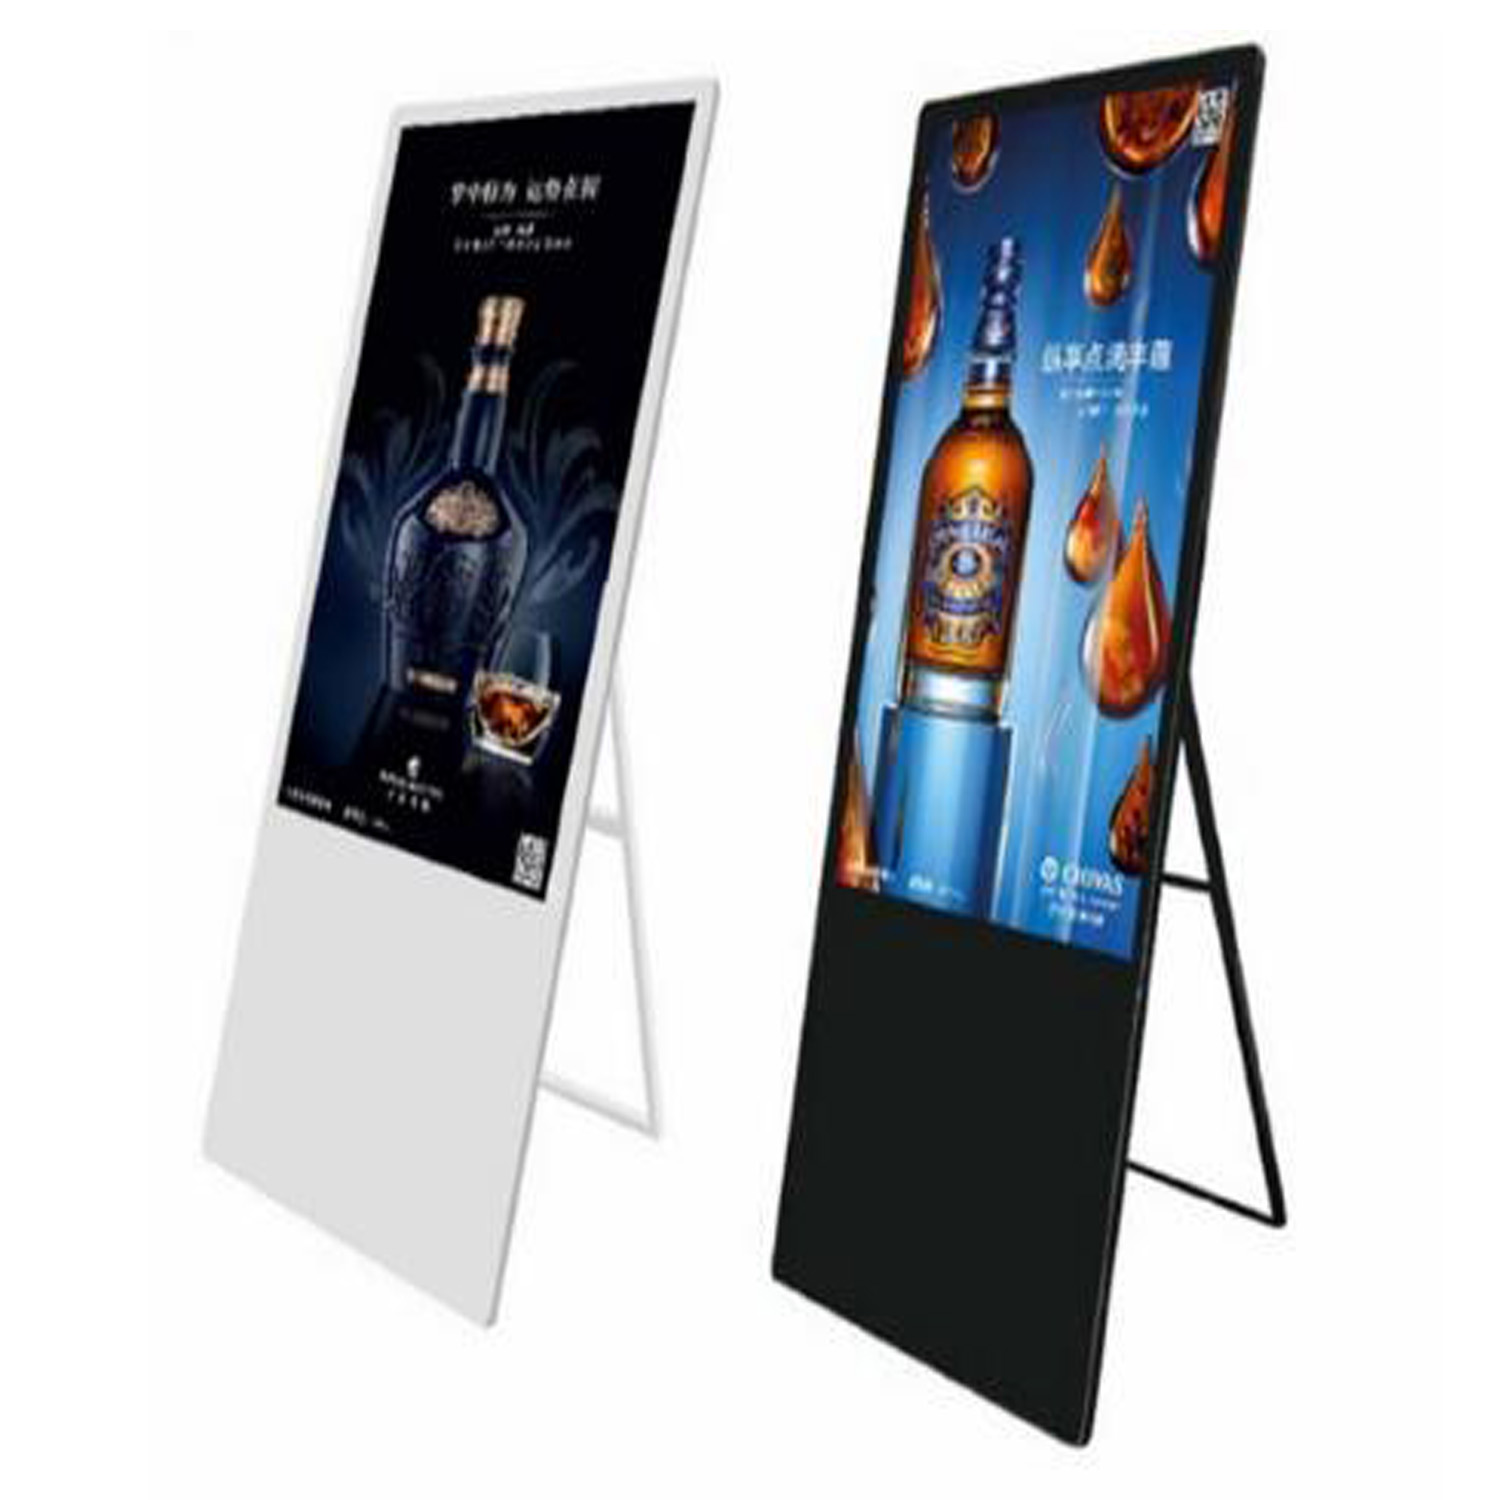 43inch portable 3g 4g wifi capacitive touch lcd advertising display digital signage for retail shop Featured Image